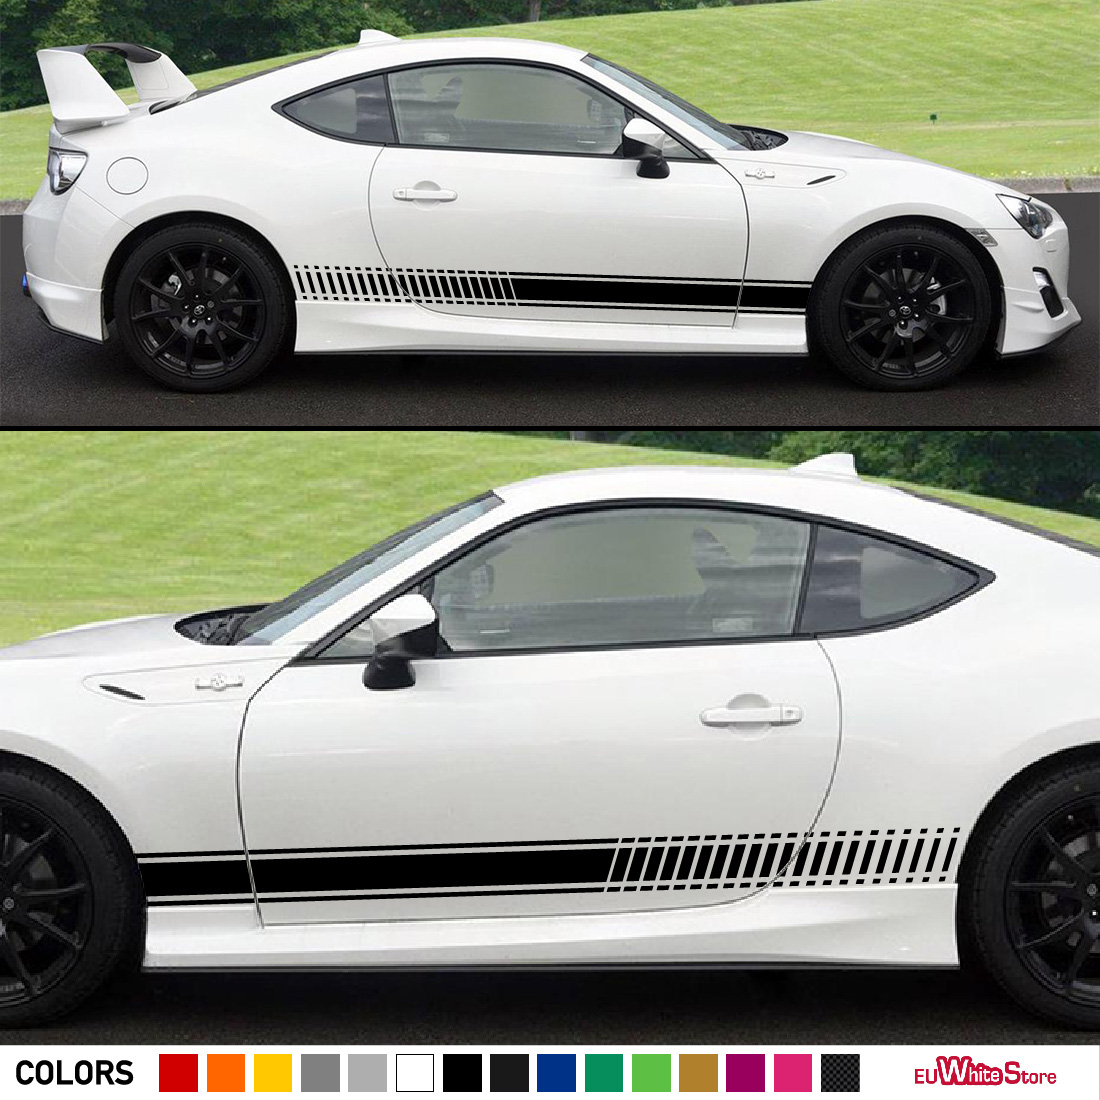 Sport decal sticker vinyl side racing stripes compatible with toyota